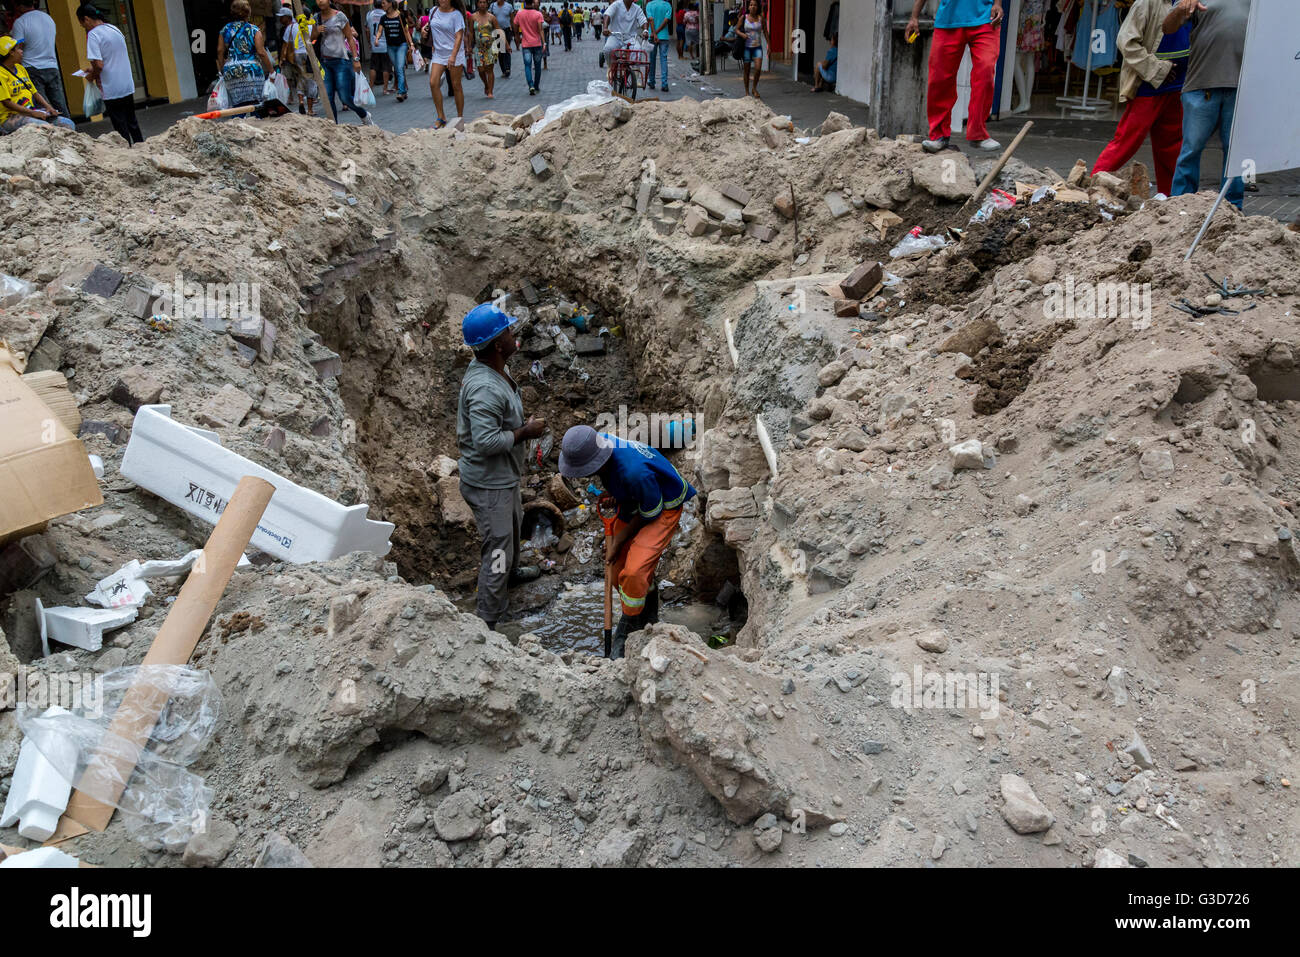 Drains repairs in busy street, Santo Antônio neighbourhood, Recife, Pernambuco, Brazil - Stock Image